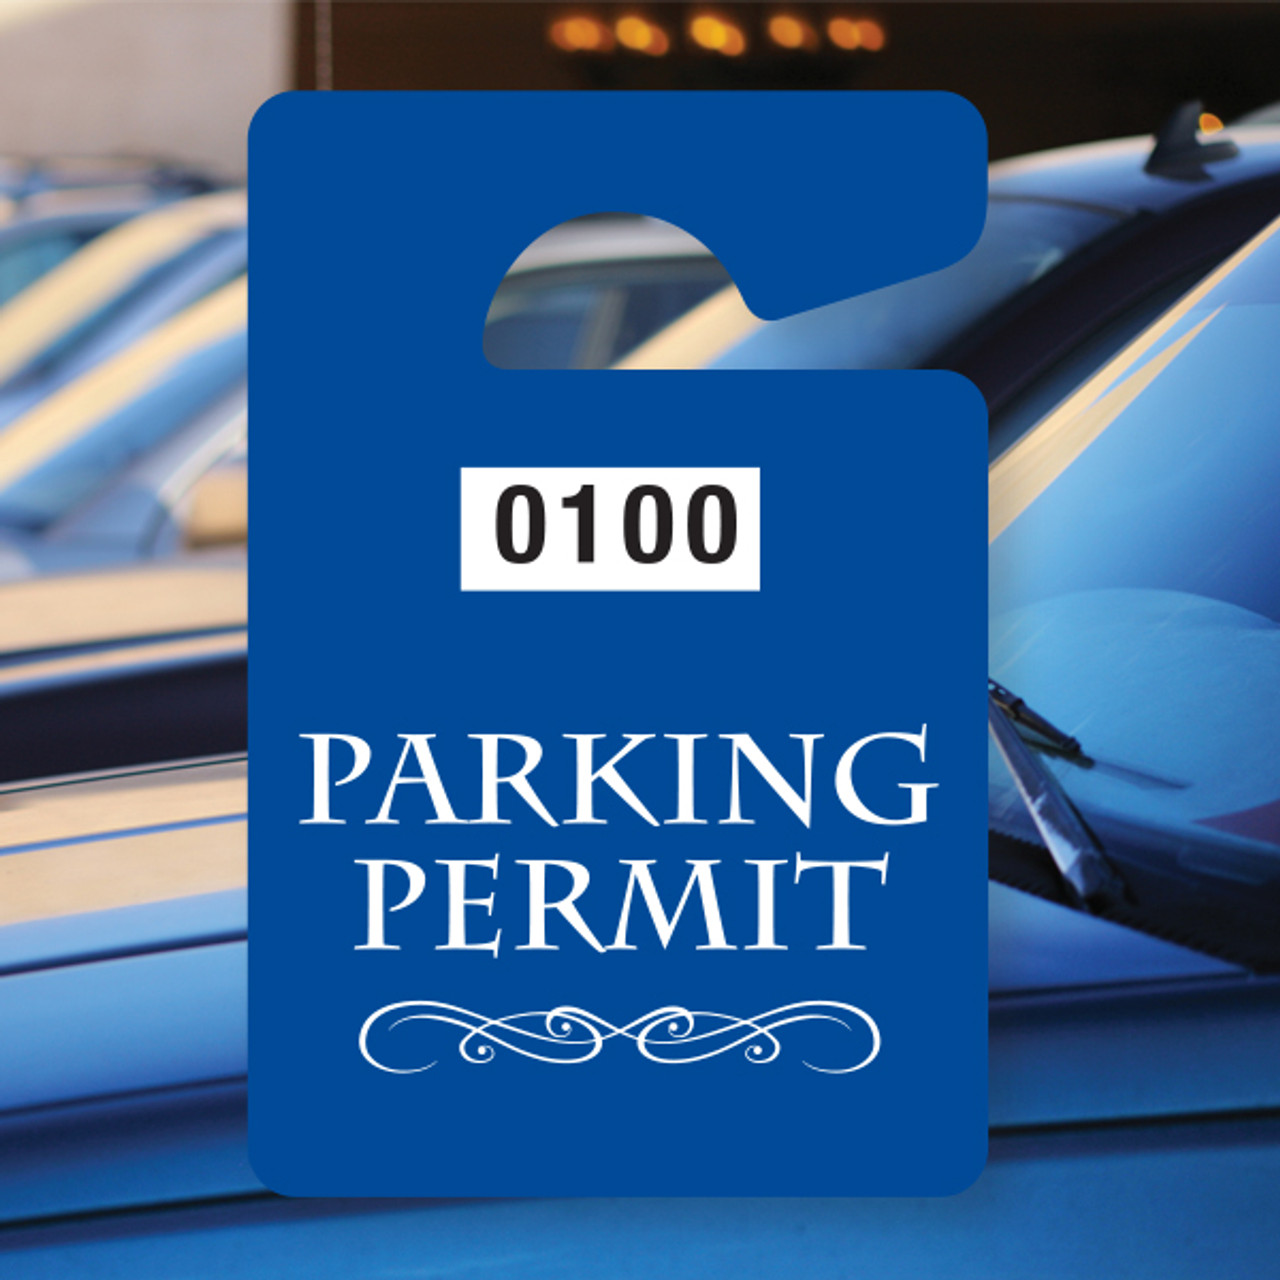 Parking Permit - Blue Numbered